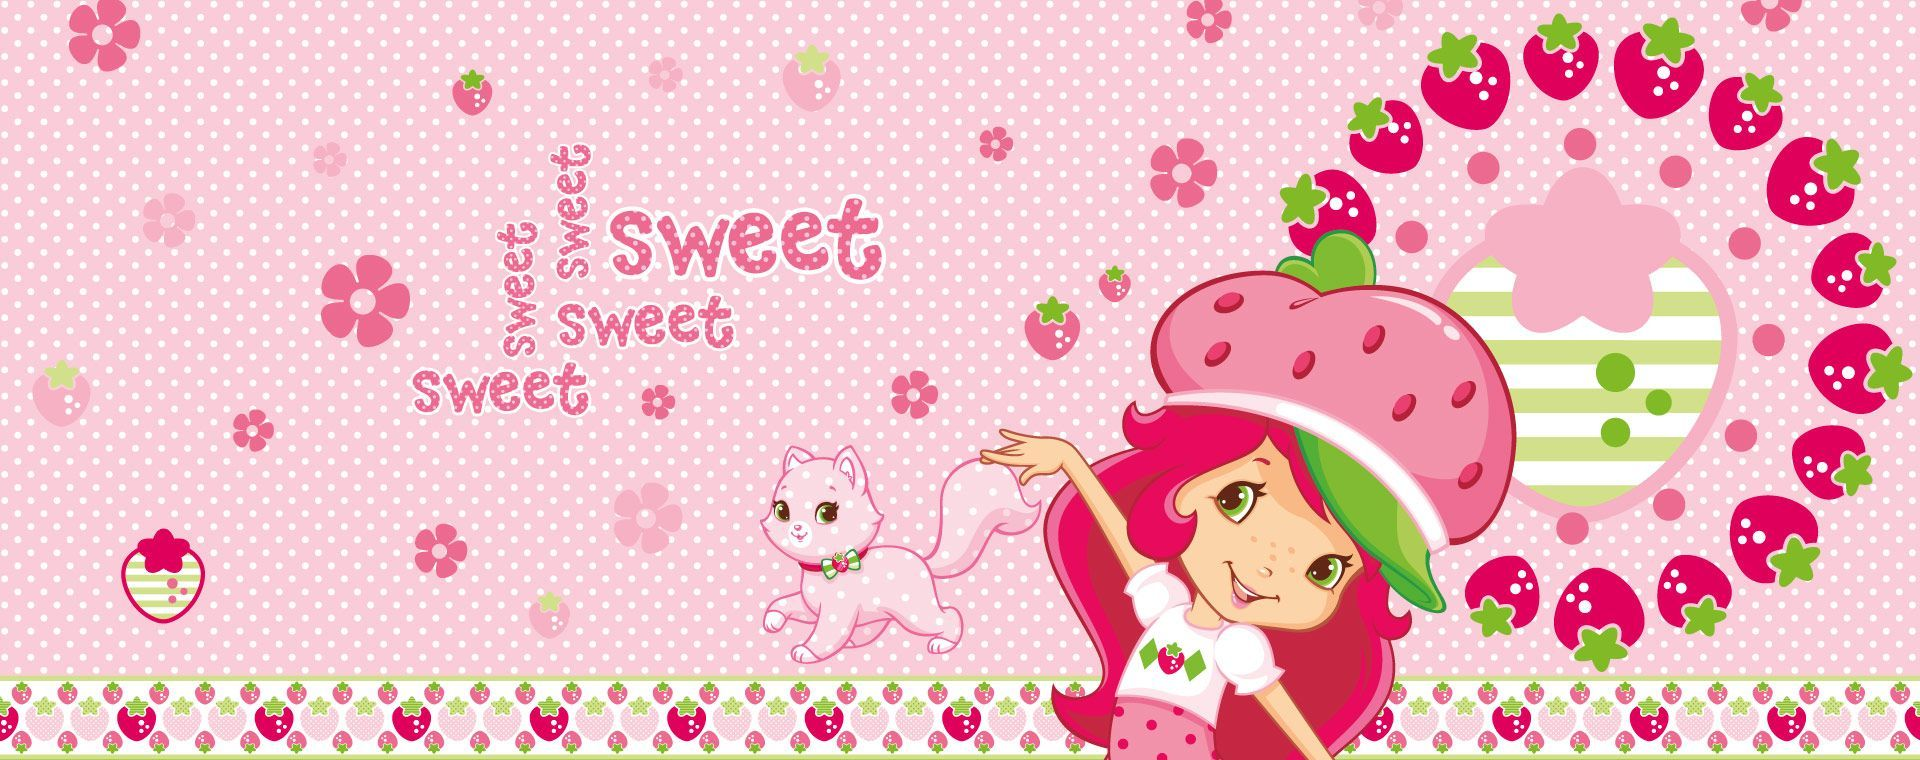 Barbie 3d Live Wallpaper Download Strawberry Shortcake Wallpaper Gallery